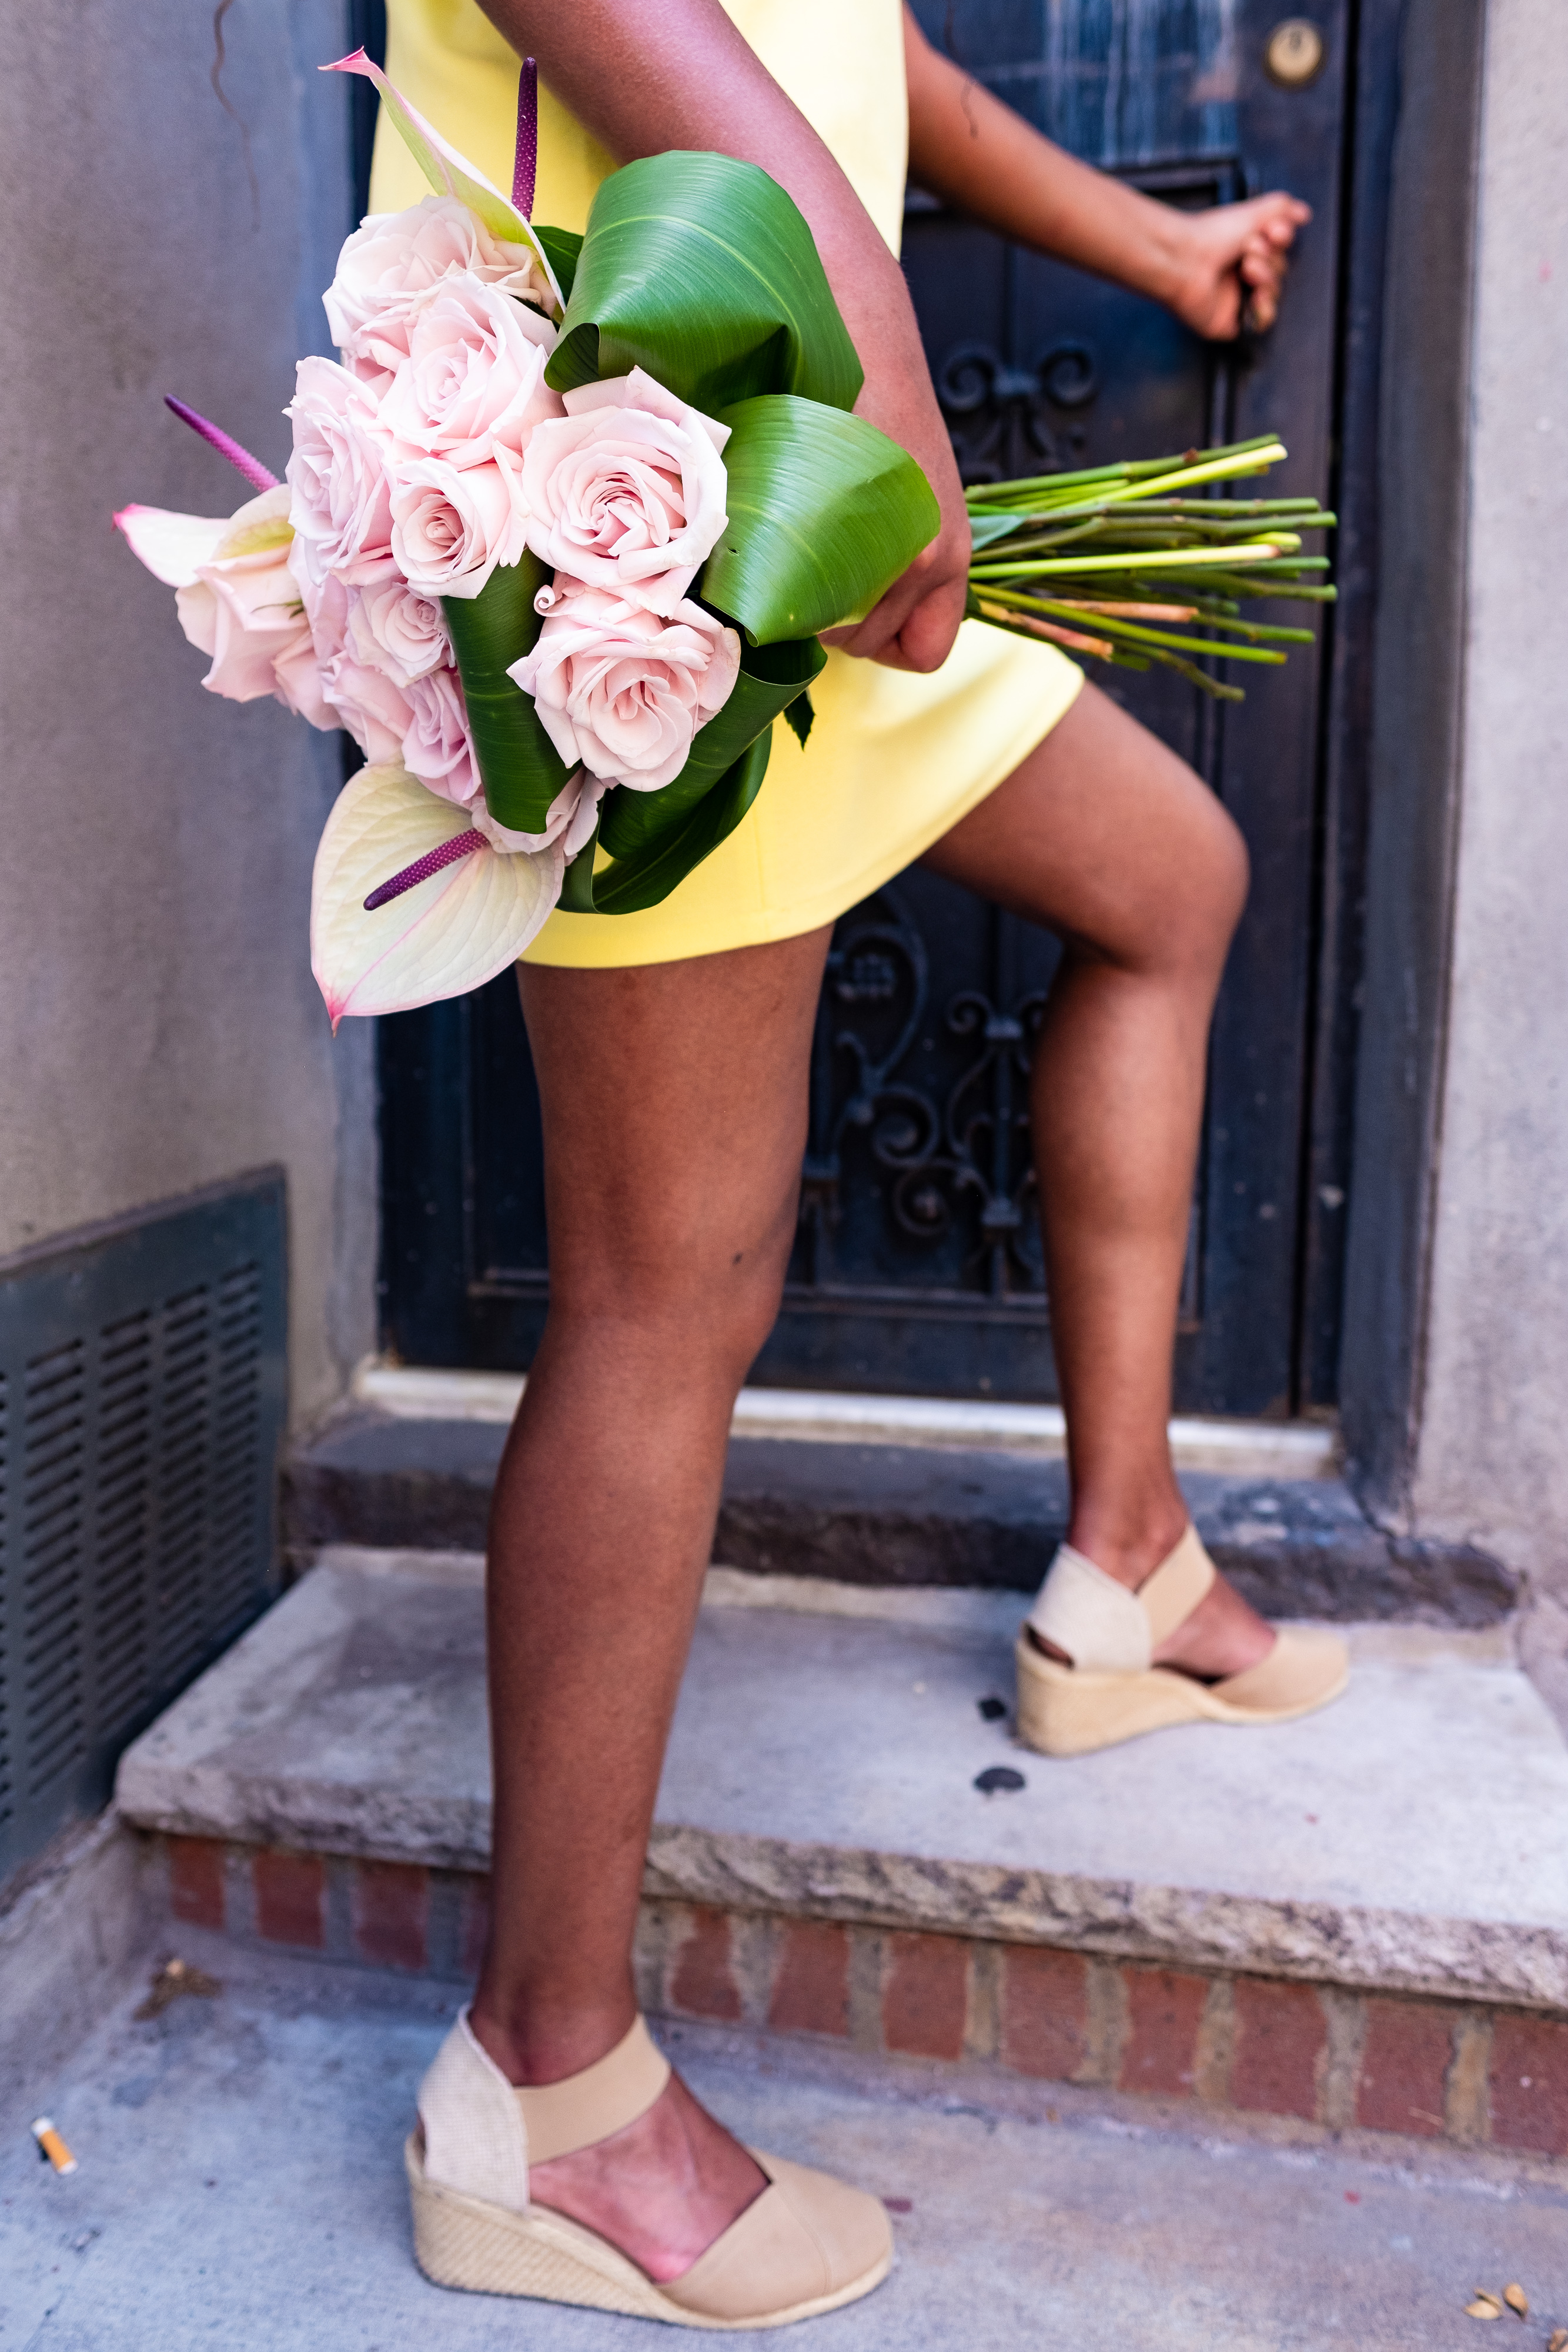 Woman wearing a yellow dress and holding a bouquet of pink roses, against a black, rod iron door at Cassava House.